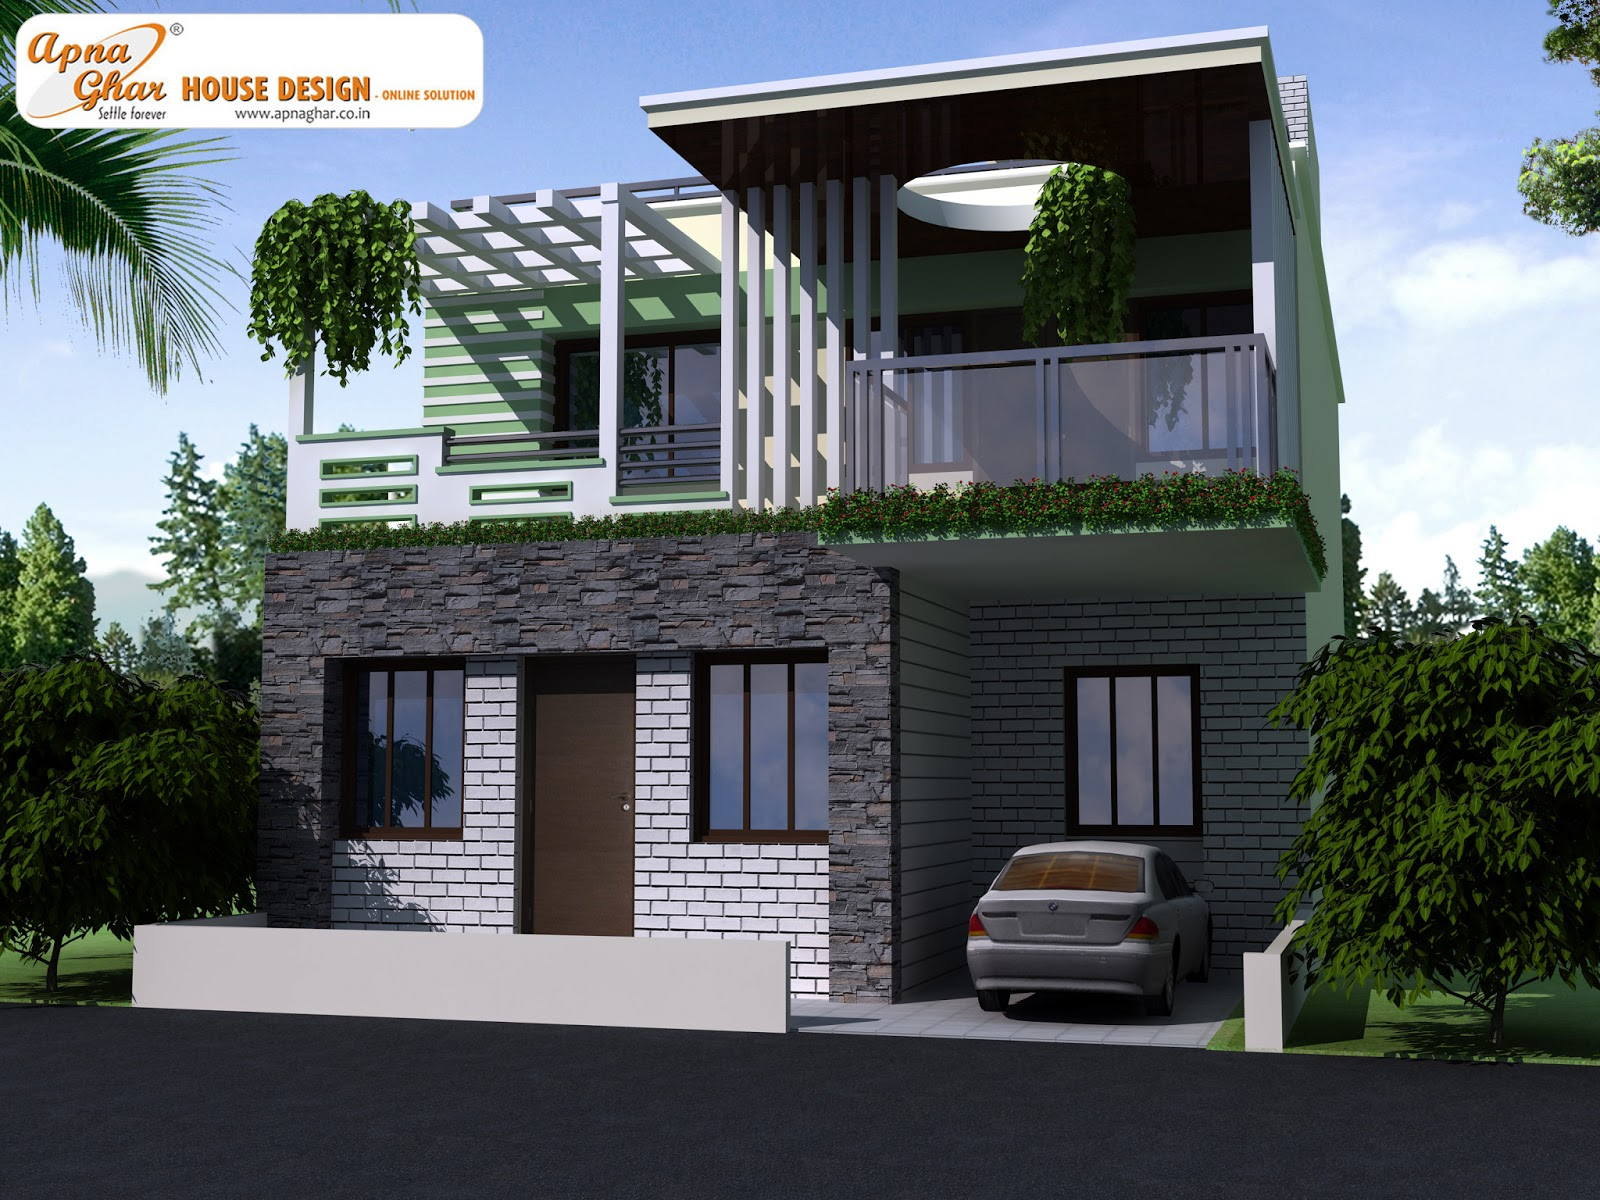 Decosee modern beautiful duplex house design - Duplex home elevation design photos ...